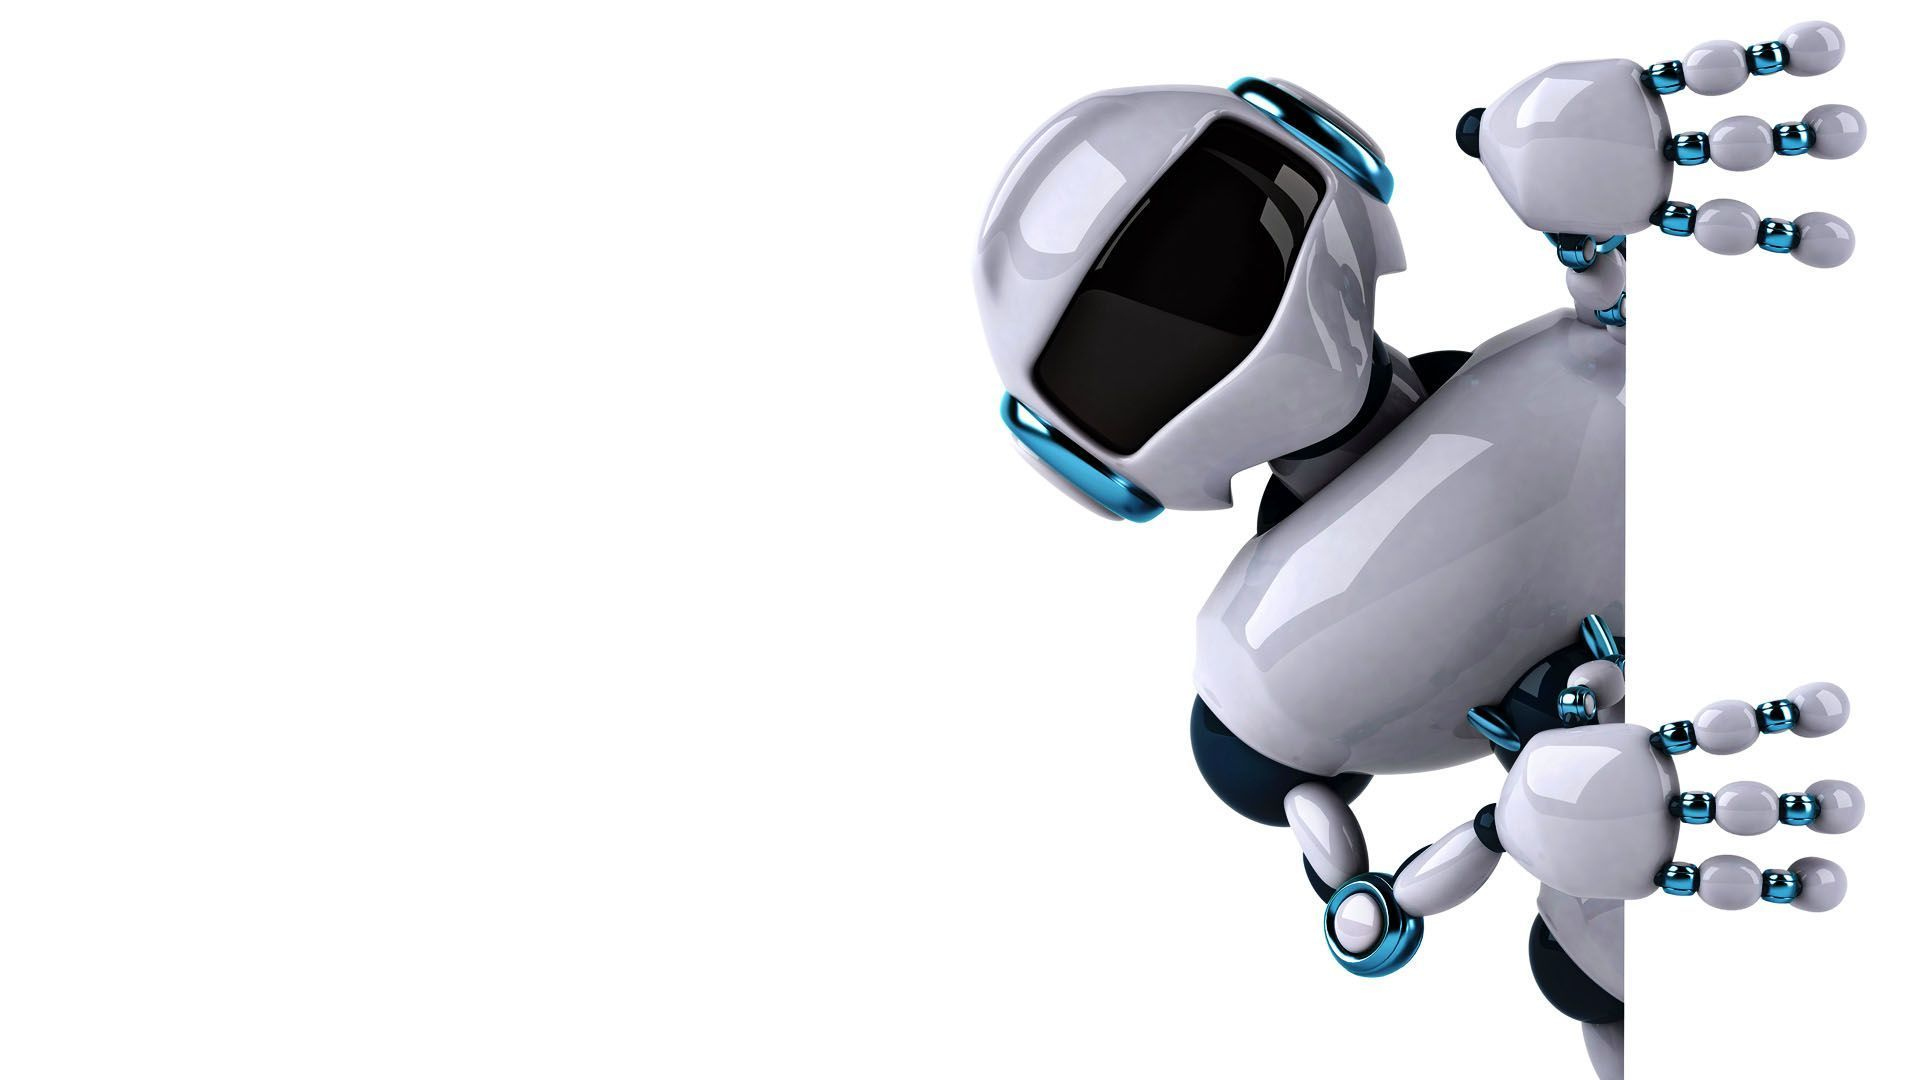 Robot Wallpapers HD | Page 3 of 3 | wallpaper.wiki